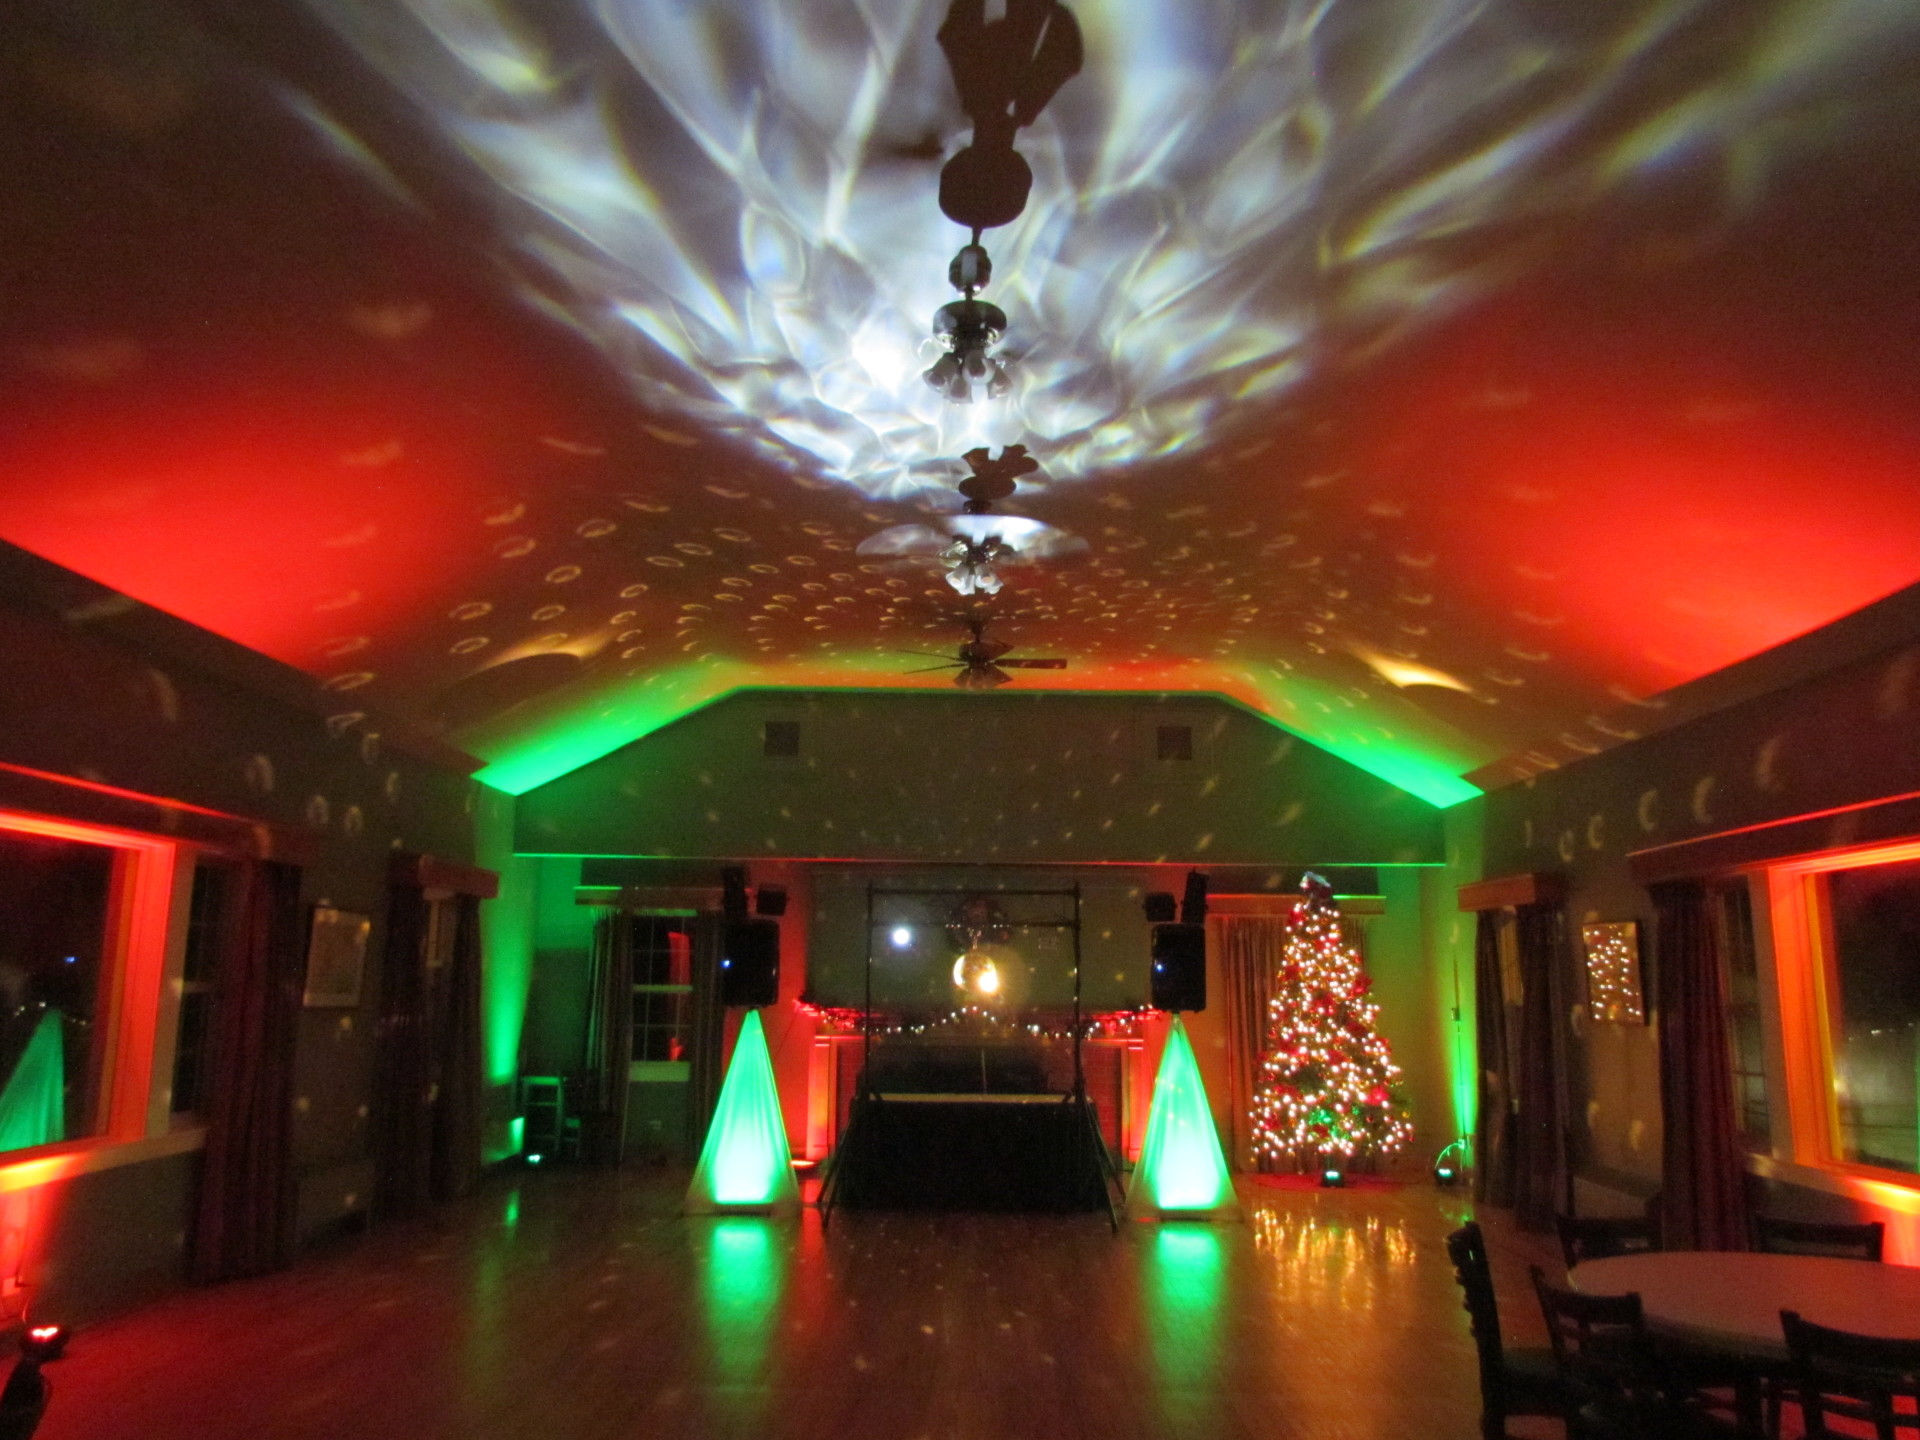 Professional Corporate DJ in Nova Scotia, Halifax, Canada for Holiday Staff Party